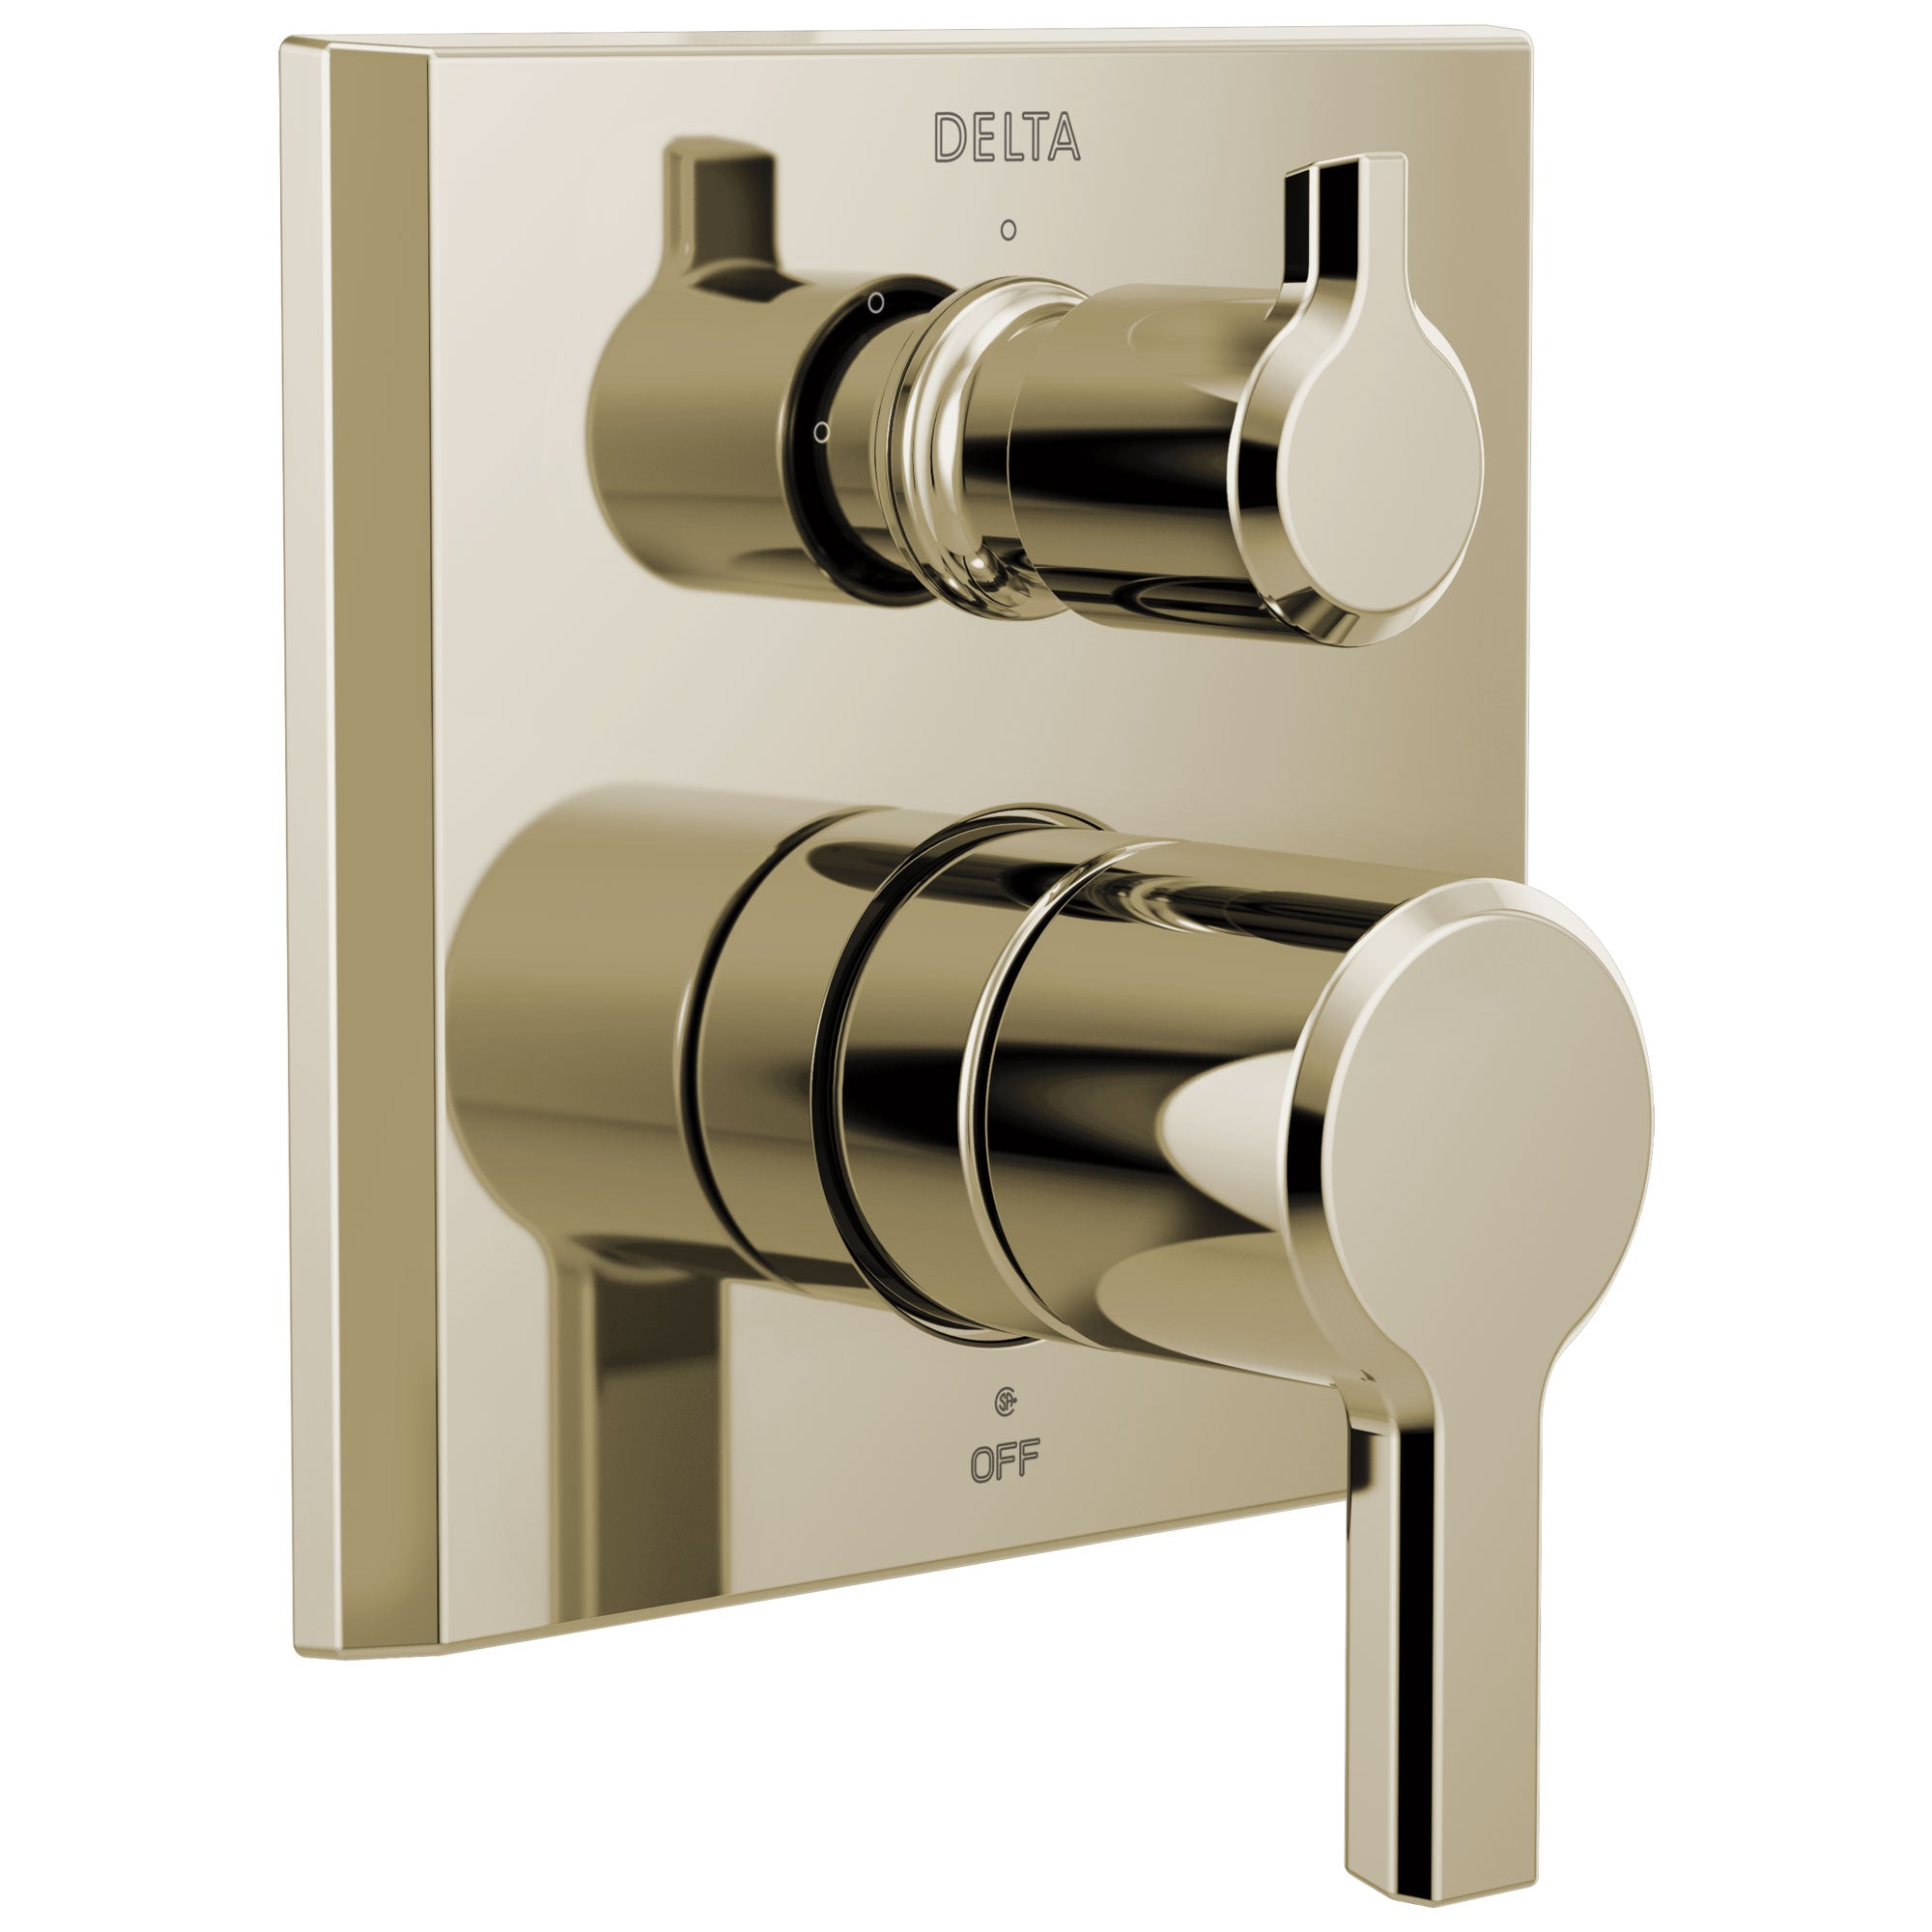 Delta Pivotal Polished Nickel Finish Monitor 14 Series Shower Control Trim Kit with 3-Setting Integrated Diverter (Requires Valve) DT24899PN